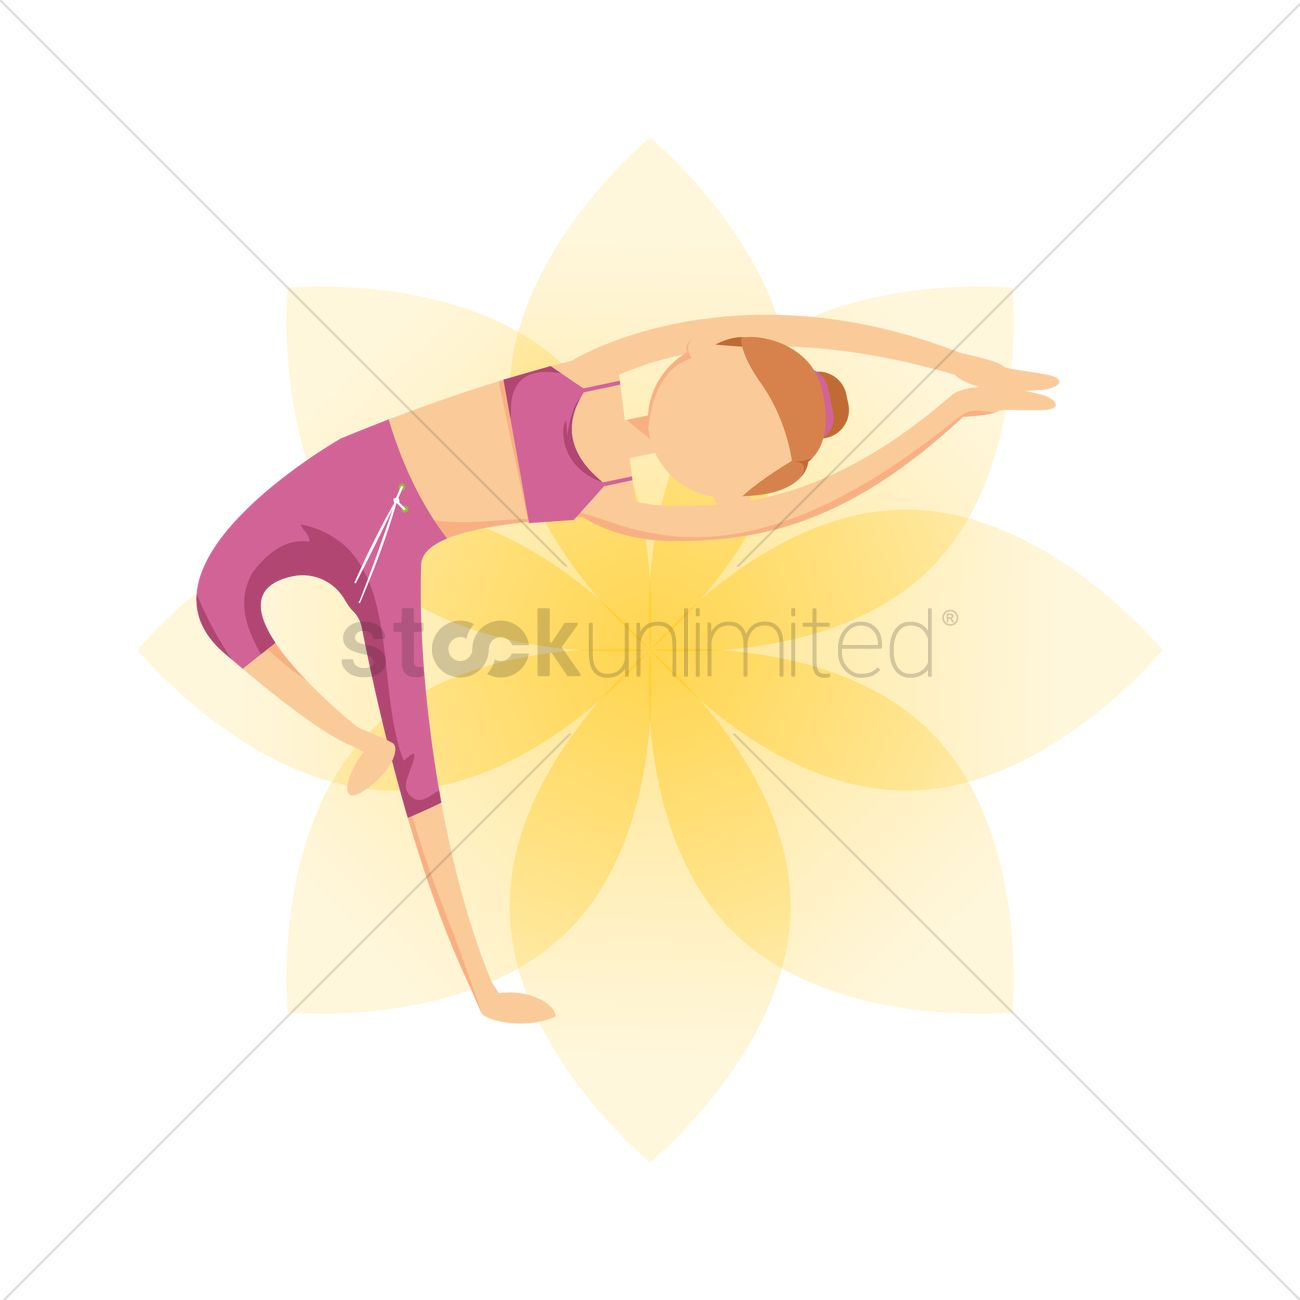 Half lotus tree pose Vector Image - 1448820 | StockUnlimited